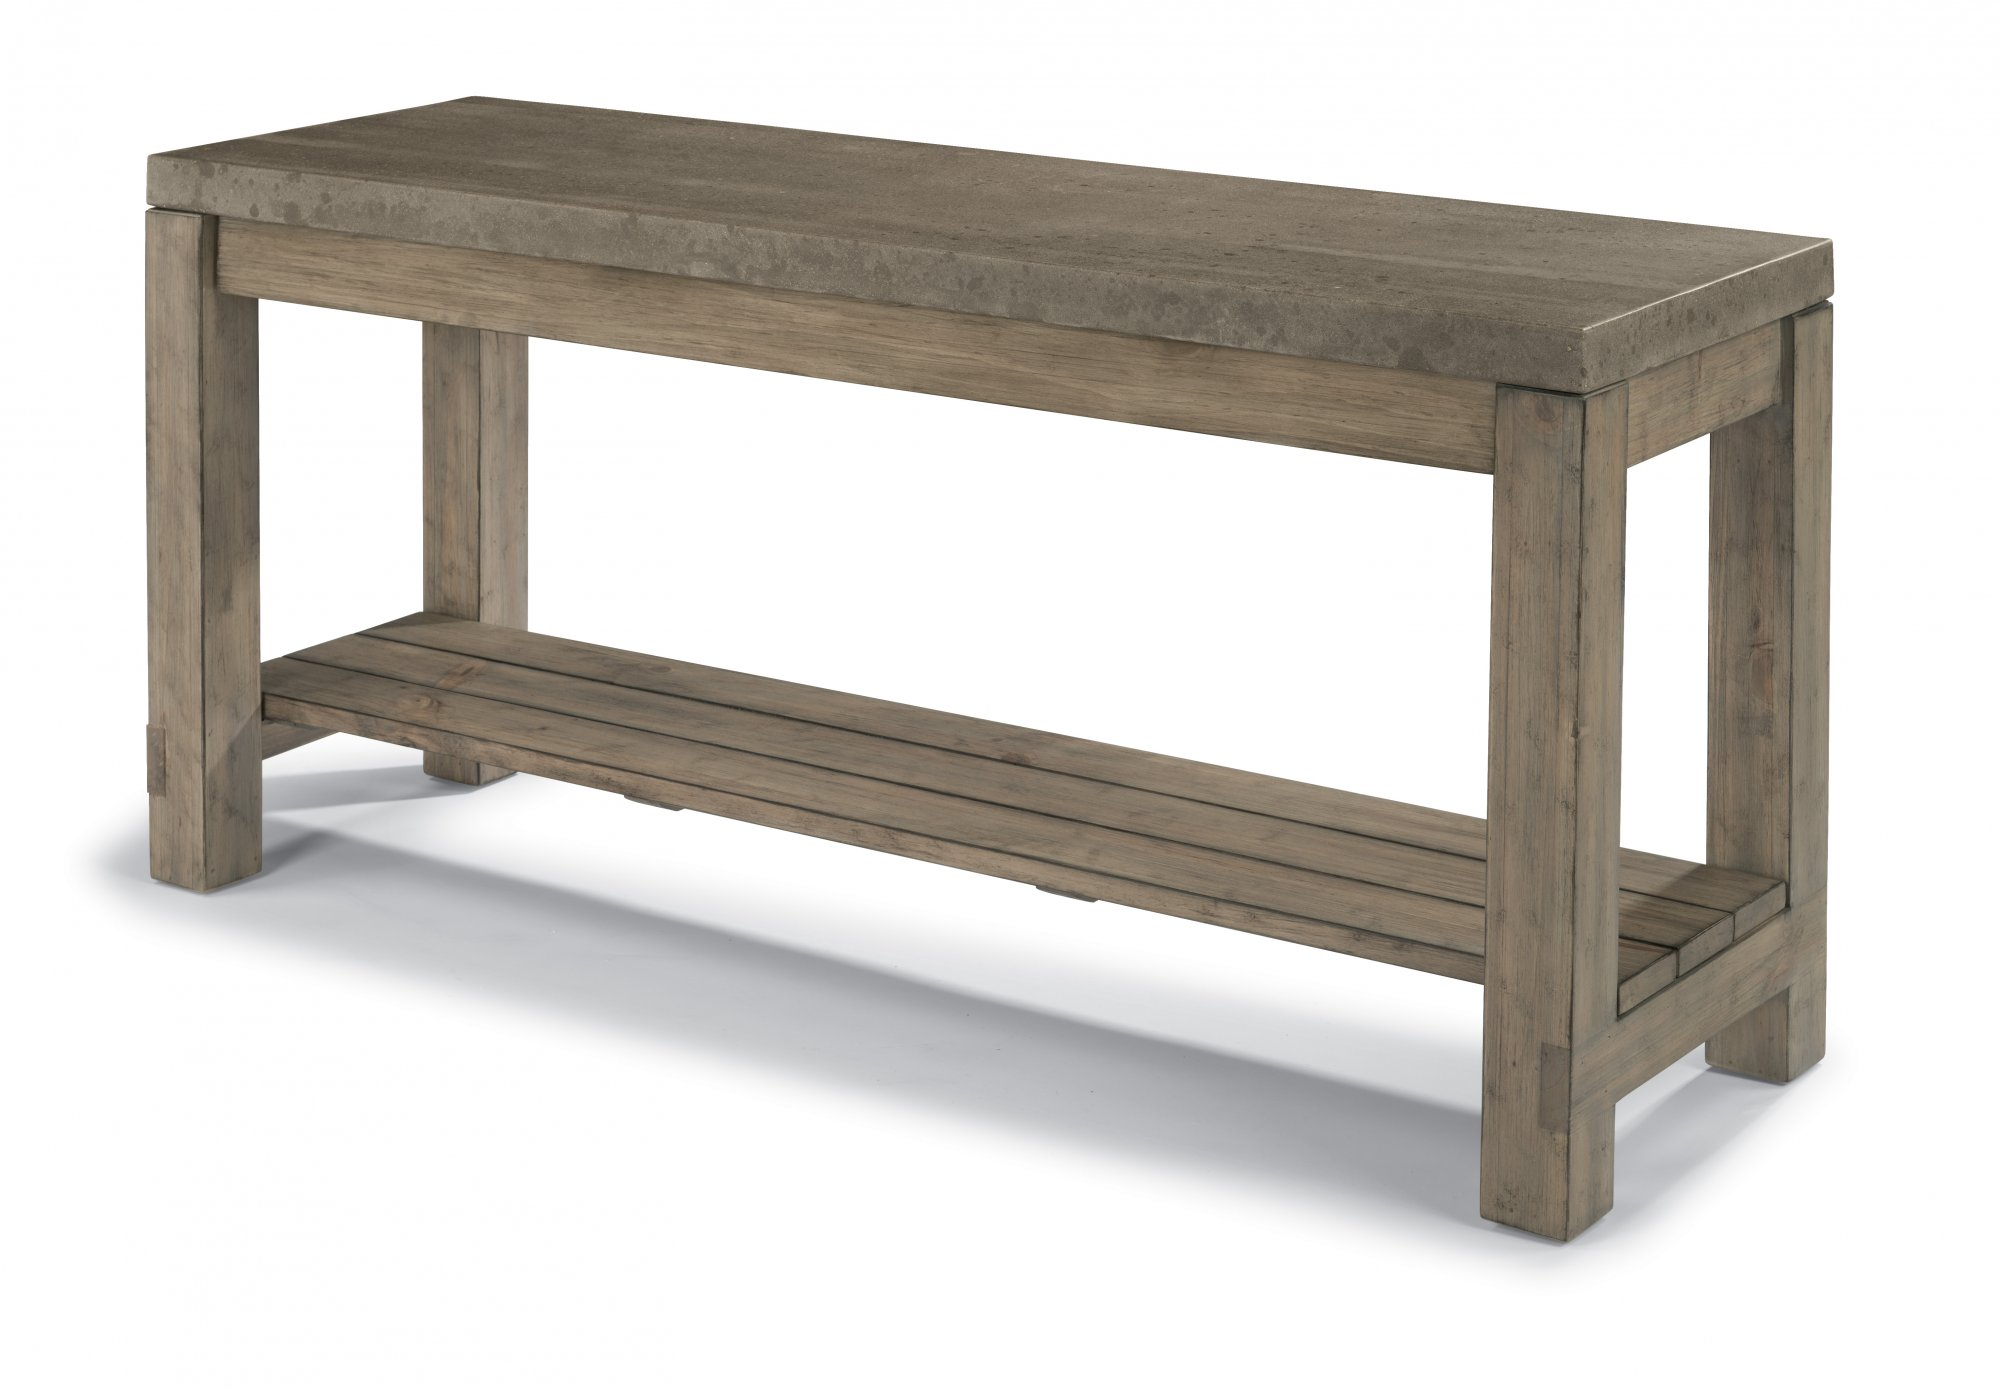 Flexsteel - W1432-04 - Keystone Sofa Table | Highway Appliance ...